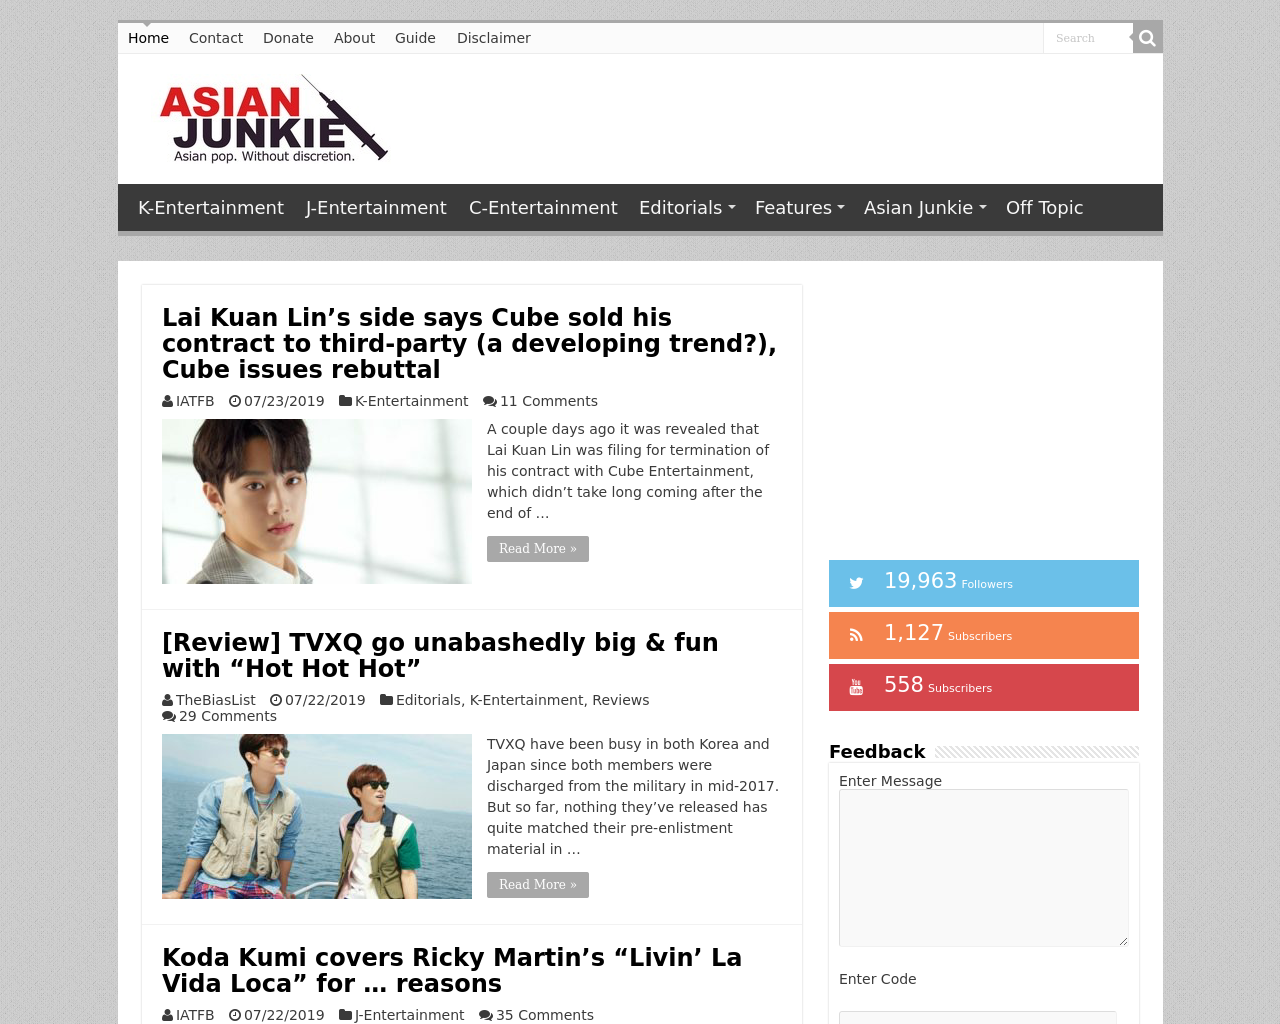 Asian Junkie Advertising Mediakits Reviews Pricing Traffic Rate Card Cost They have access to things like this www.asianjunkie.com/2012/02/ex… but their relations with soompi and allkpop is ineteresting www.asianjunkie.com/2012/01/as… advertising companies